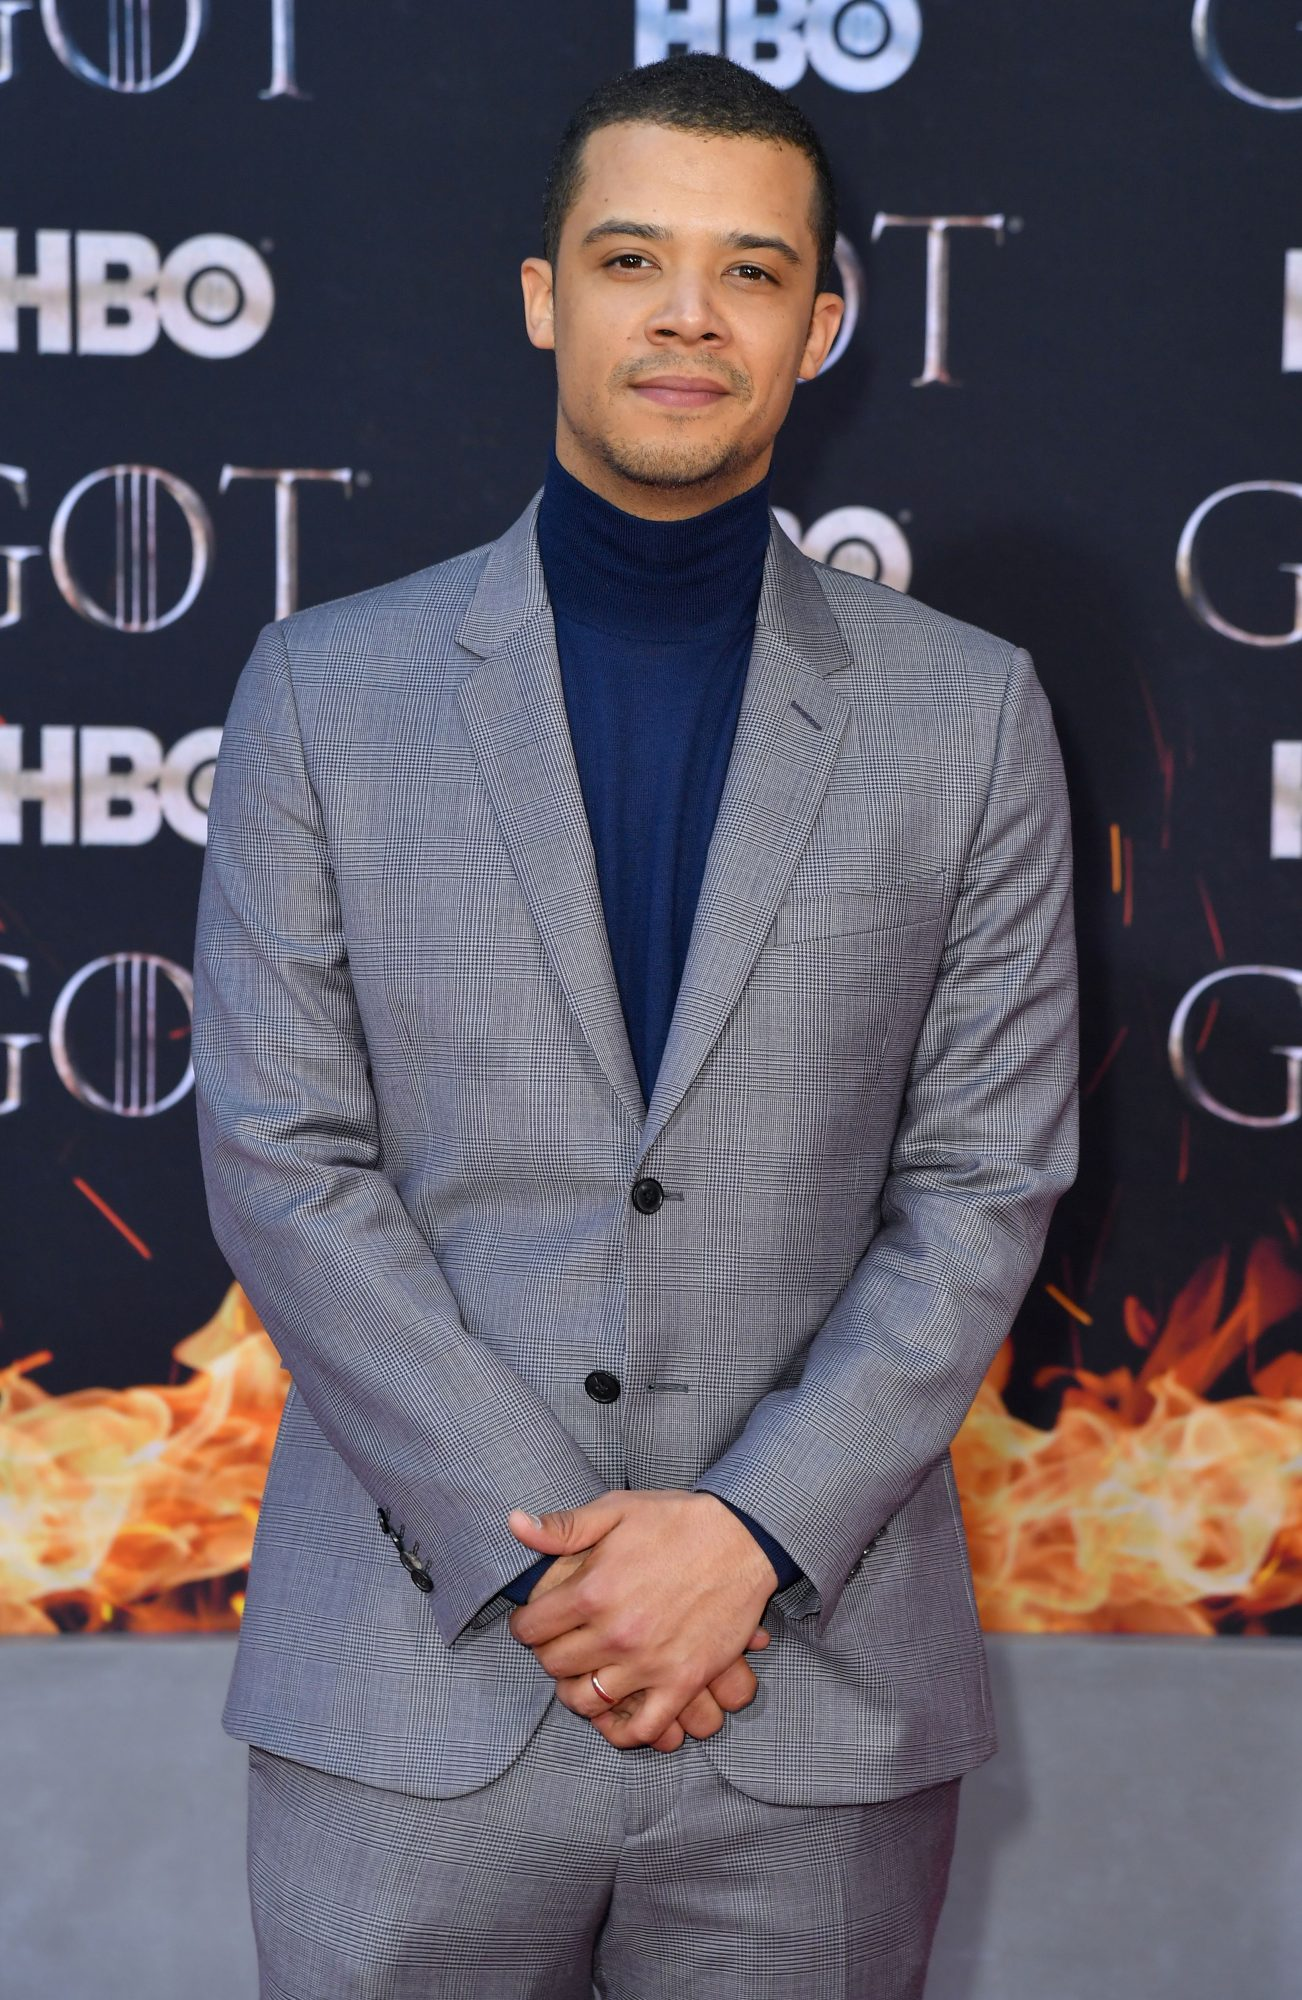 """British actor Jacob Anderson arrives for the """"Game of Thrones"""" eighth and final season premiere at Radio City Music Hall on April 3, 2019 in New York city. (Photo by Angela Weiss / AFP)        (Photo credit should read ANGELA WEISS/AFP/Getty Images)"""